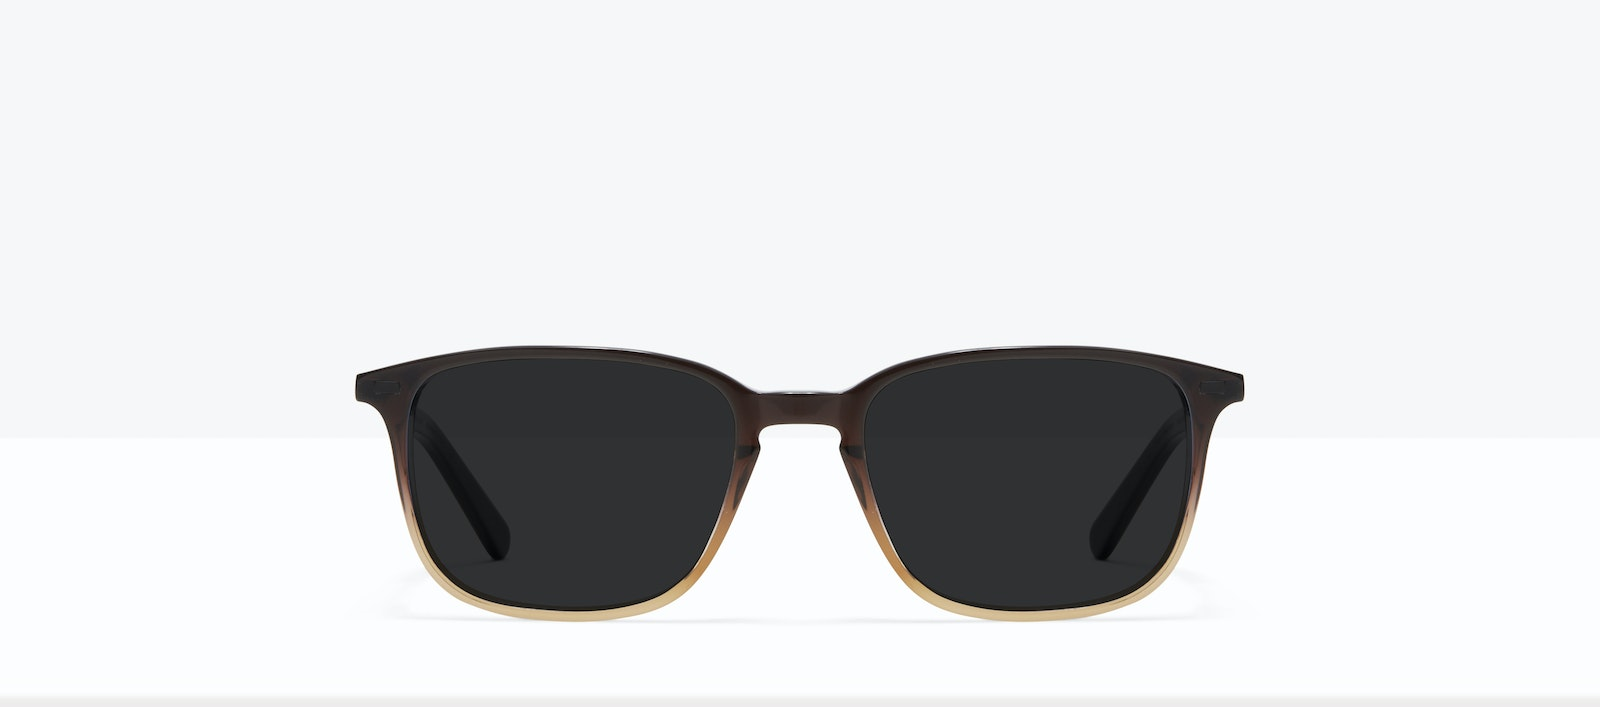 Affordable Fashion Glasses Rectangle Sunglasses Men Sharp L Mocha Front